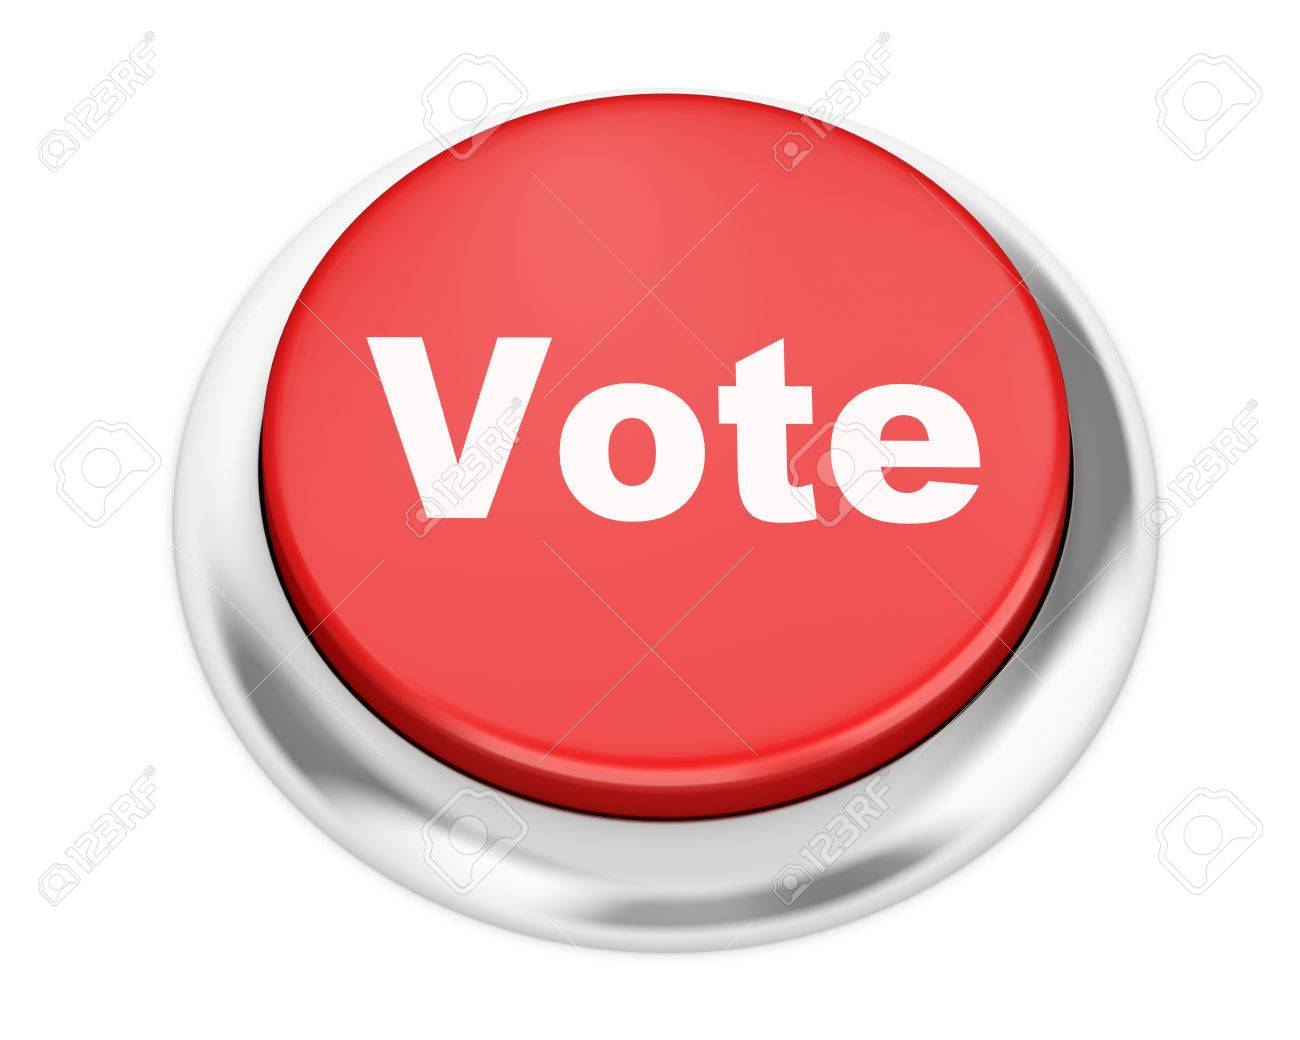 Vote Button On Isolate White Background Stock Photo, Picture And ...